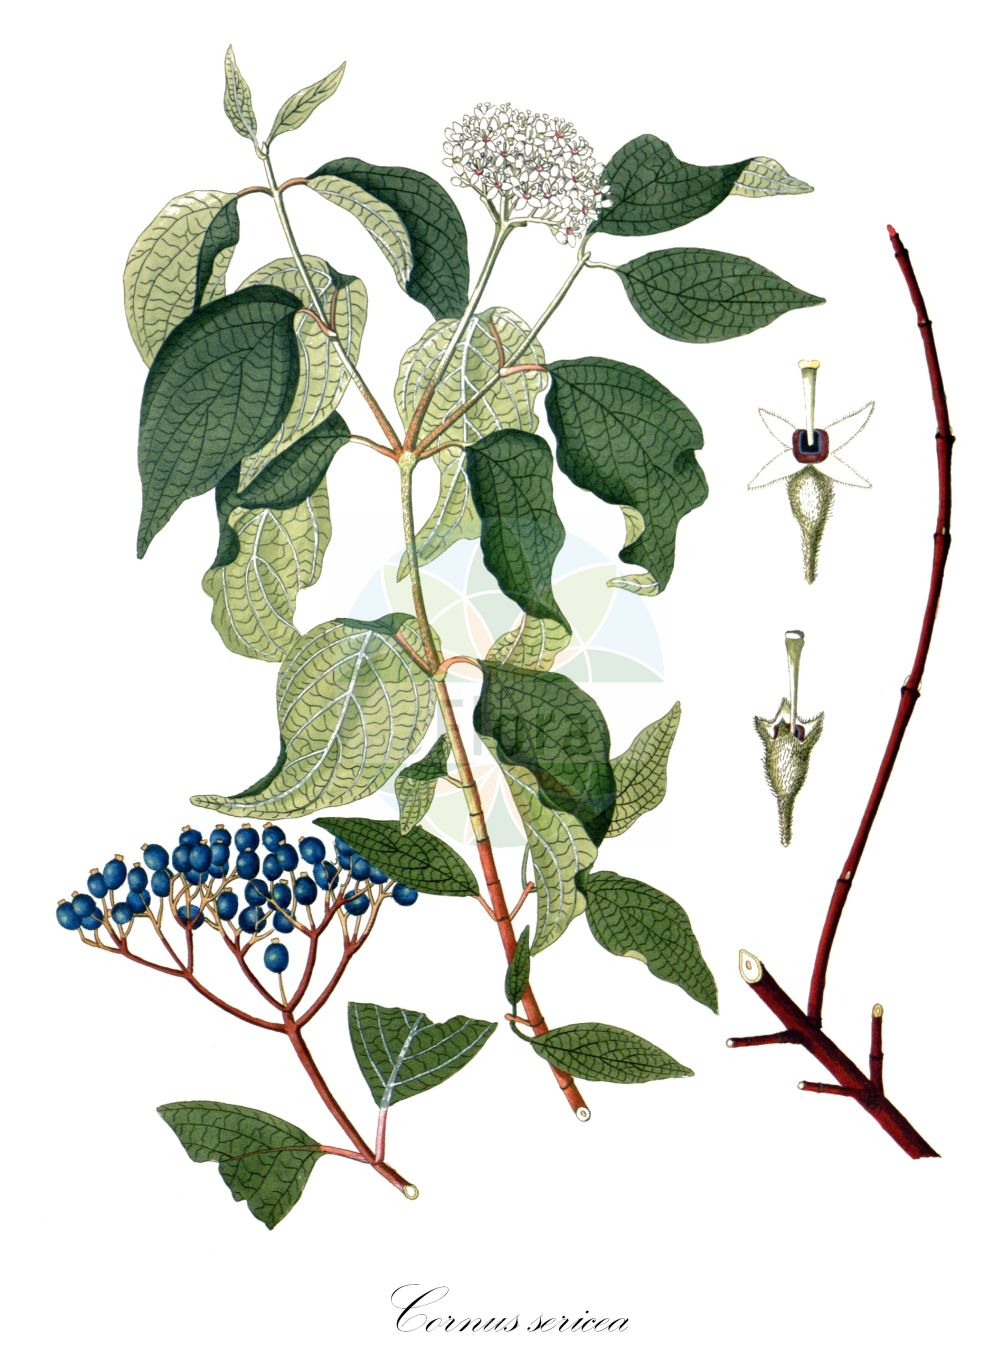 Historische Abbildung von Cornus sericea (Weisser Hartriegel - Red-osier Dogwood). Das Bild zeigt Blatt, Bluete, Frucht und Same. ---- Historical Drawing of Cornus sericea (Weisser Hartriegel - Red-osier Dogwood).The image is showing leaf, flower, fruit and seed.(Cornus sericea,Weisser Hartriegel,Red-osier Dogwood,Swida sericea,Thelycrania sericea,Cornus,Hartriegel,Cornel,Cornaceae,Hartriegelgewaechse,Dogwood family,Blatt,Bluete,Frucht,Same,leaf,flower,fruit,seed,Krauss (1802f))